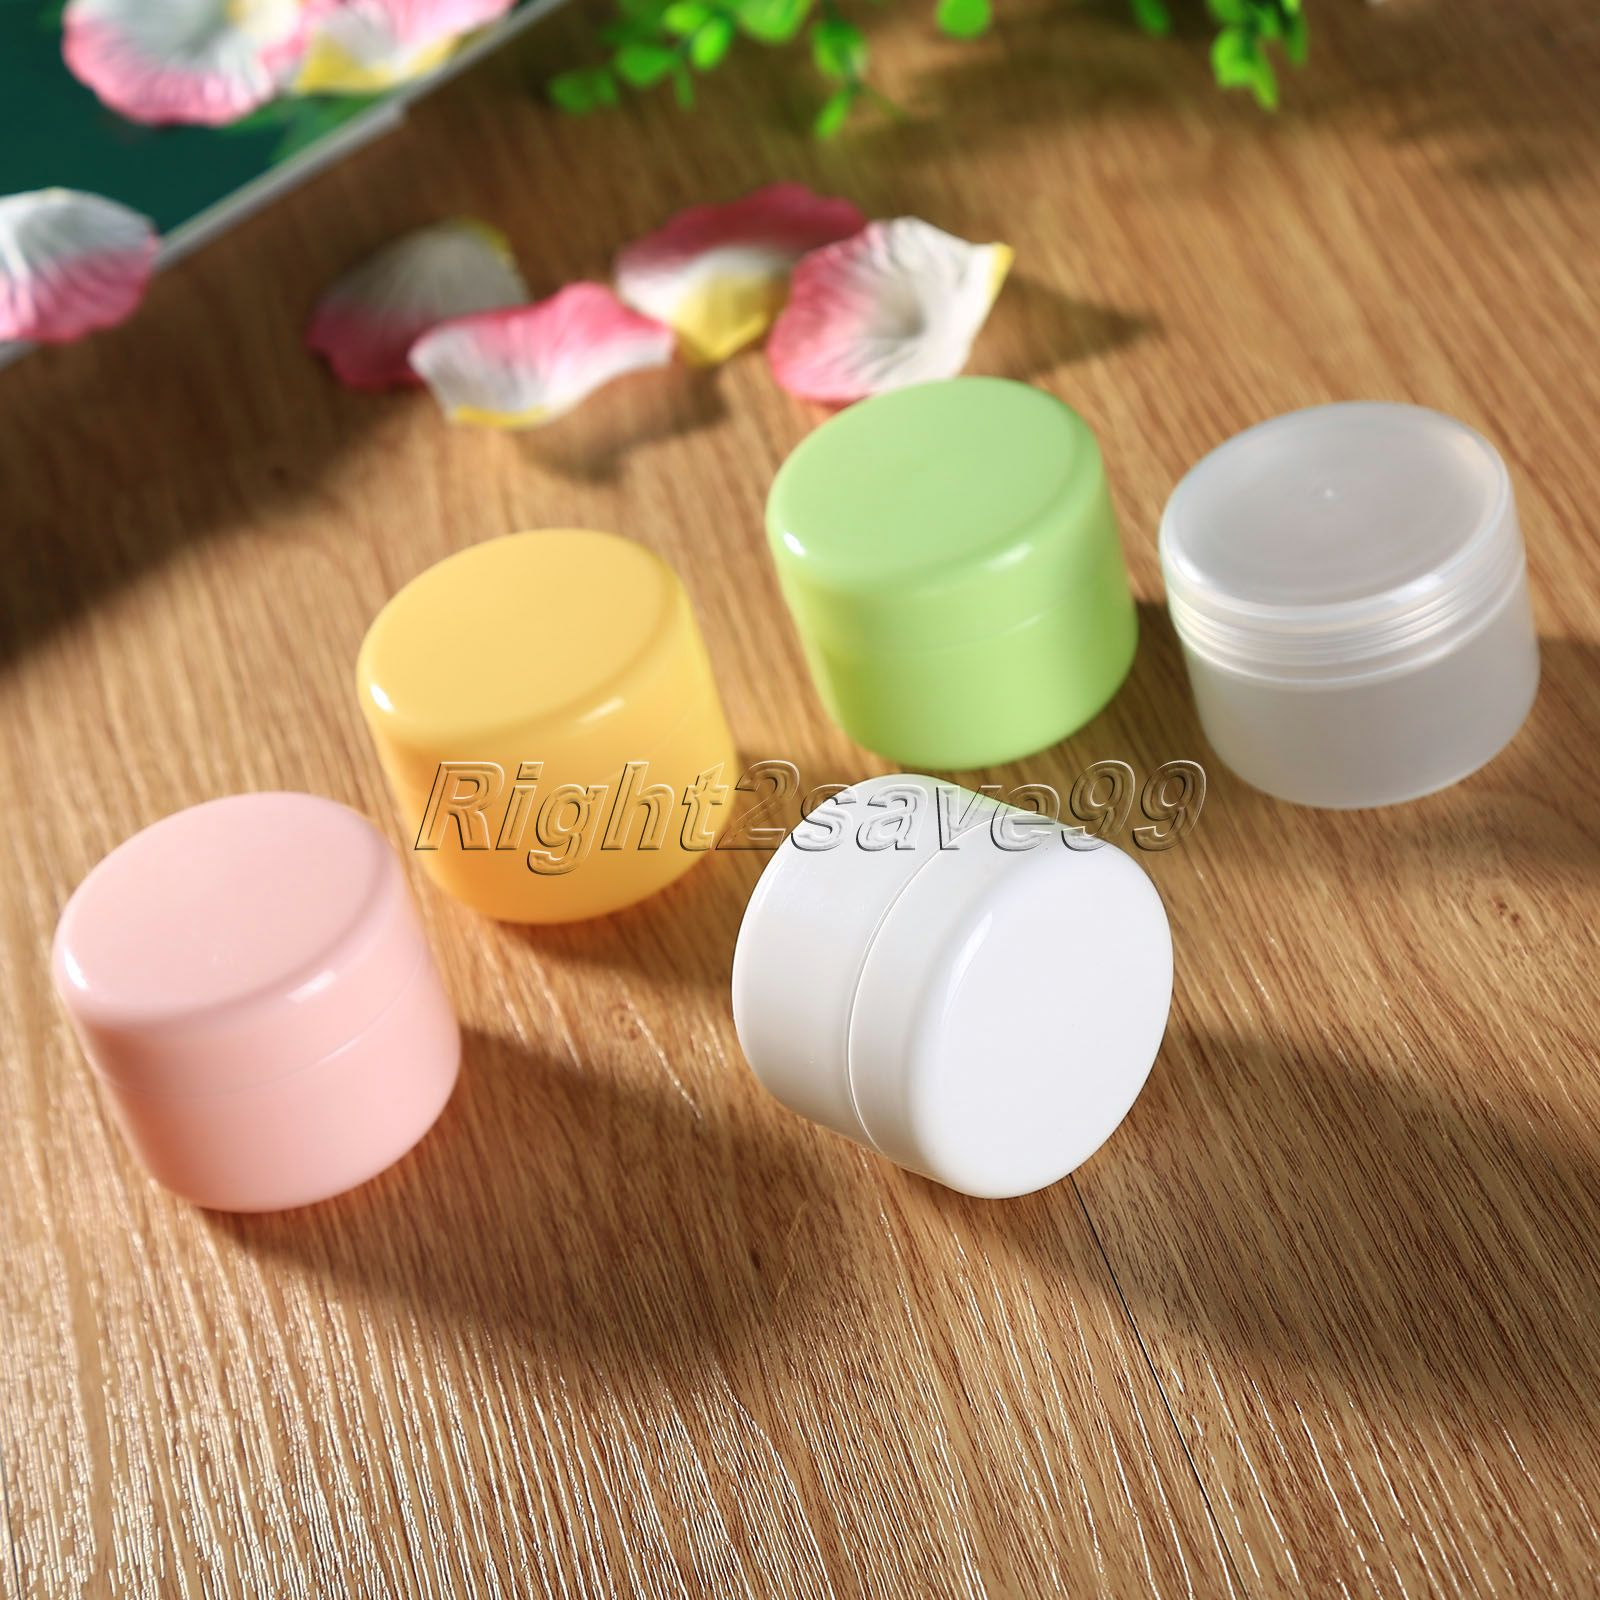 5Pcs/Lot 50ml 50g Colorful Face Cream Jars Pot Travel Plastic Empty Cosmetic Containers 50ml Cosmetic Sample Containers 100 pcs lot of small glass vials with cork tops 1 ml tiny bottles little empty jars